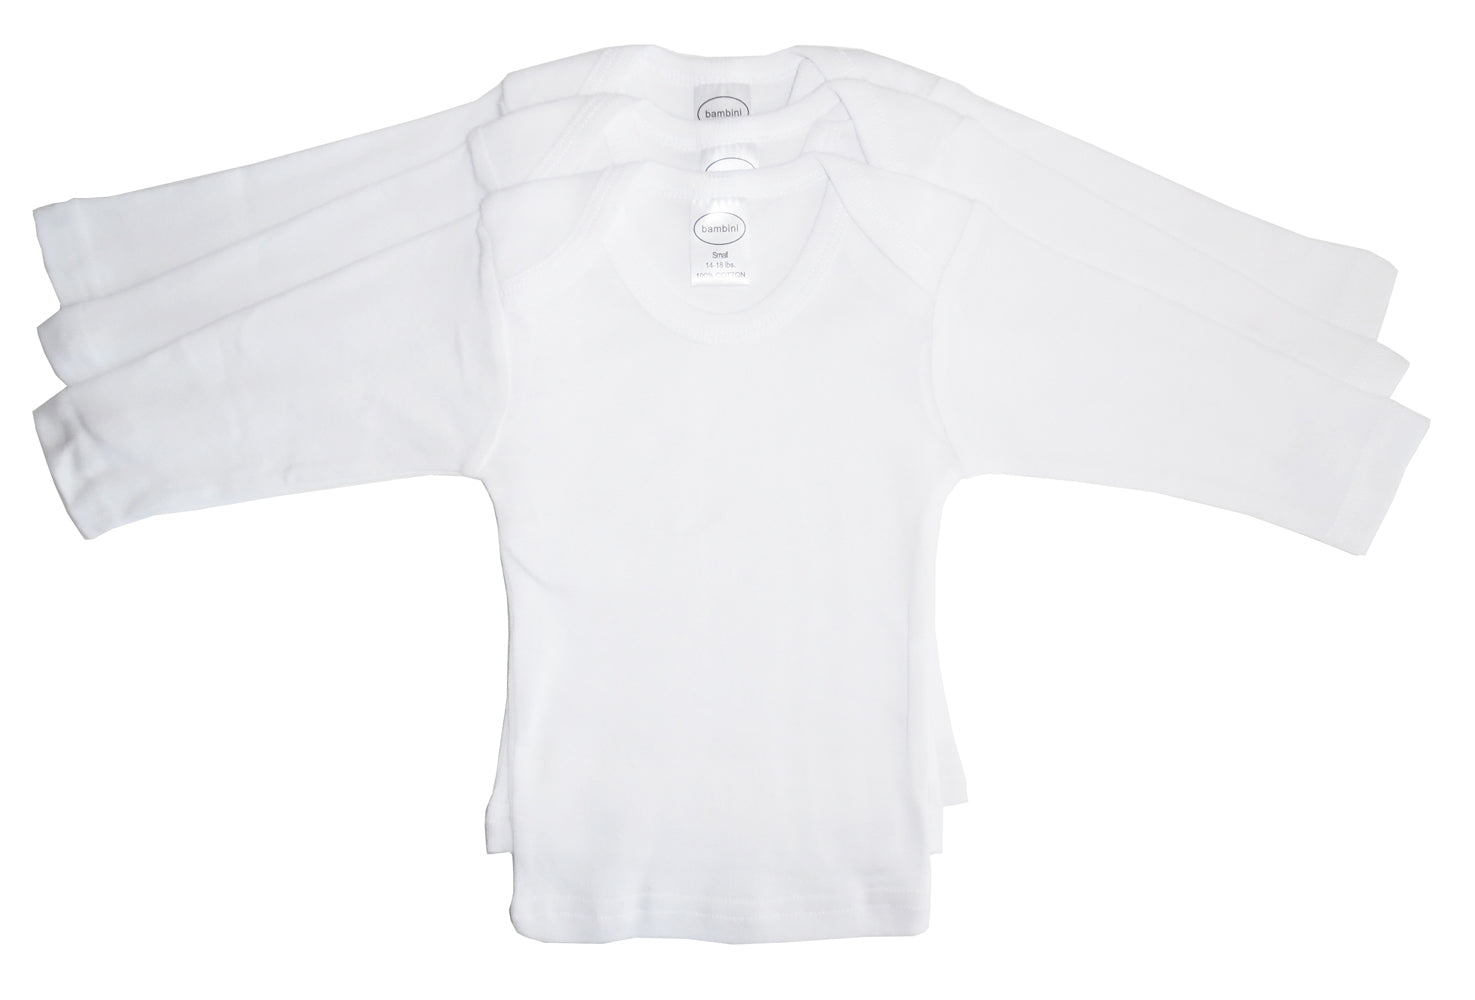 Bambini Long Sleeve White Lap T-shirt